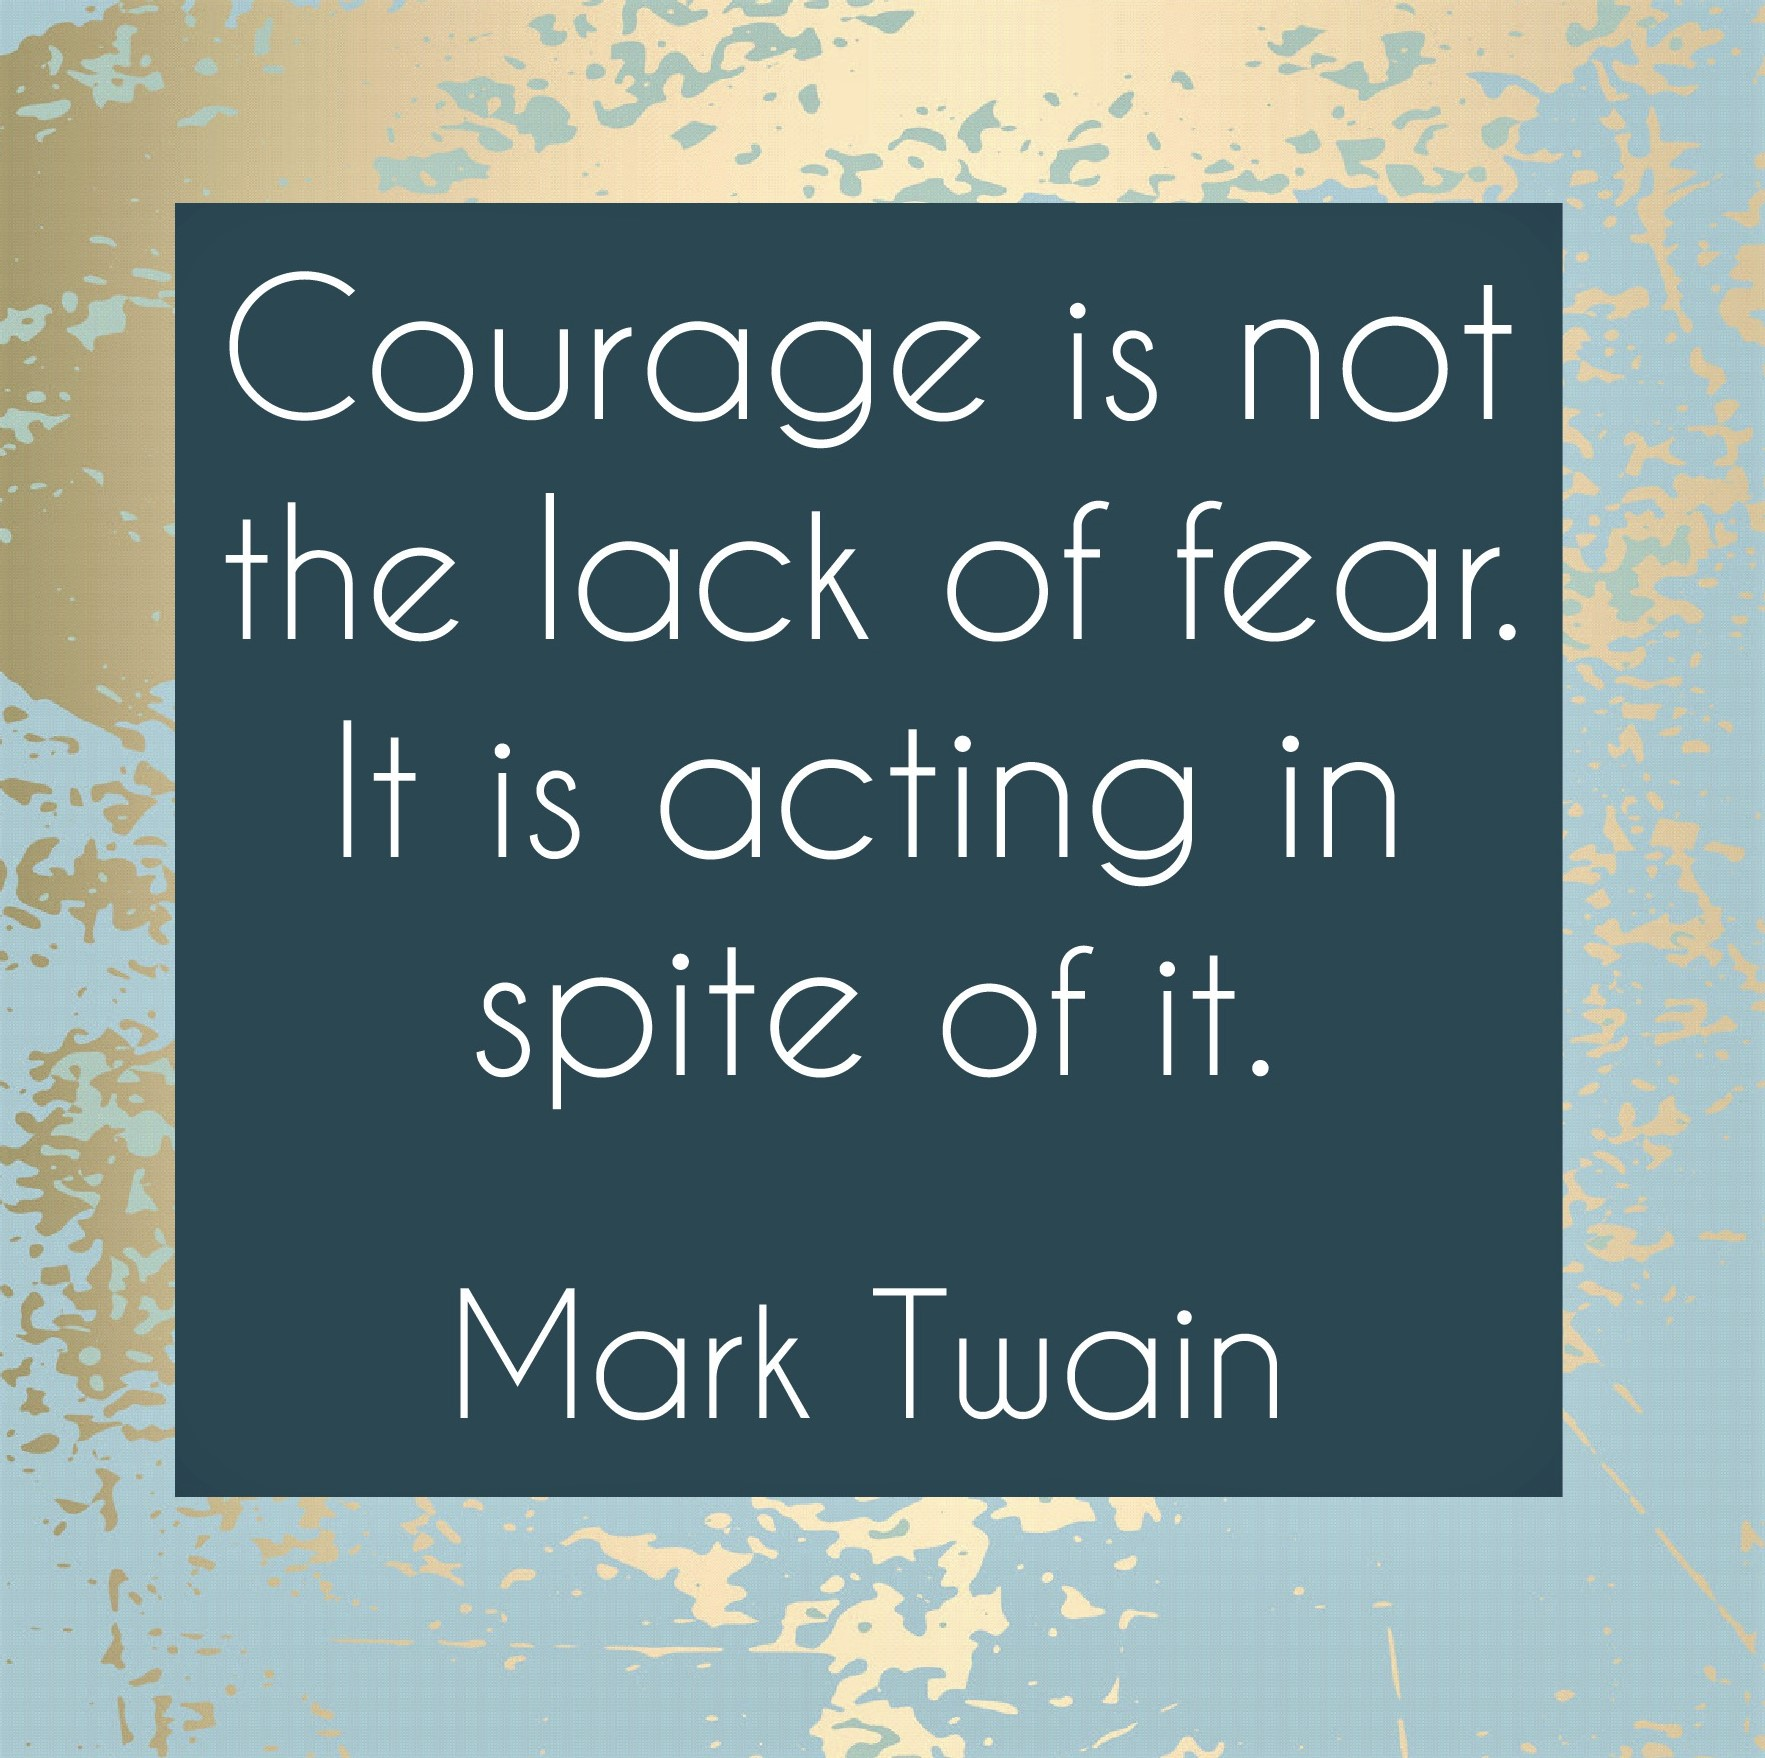 Courage is not the lack of fear